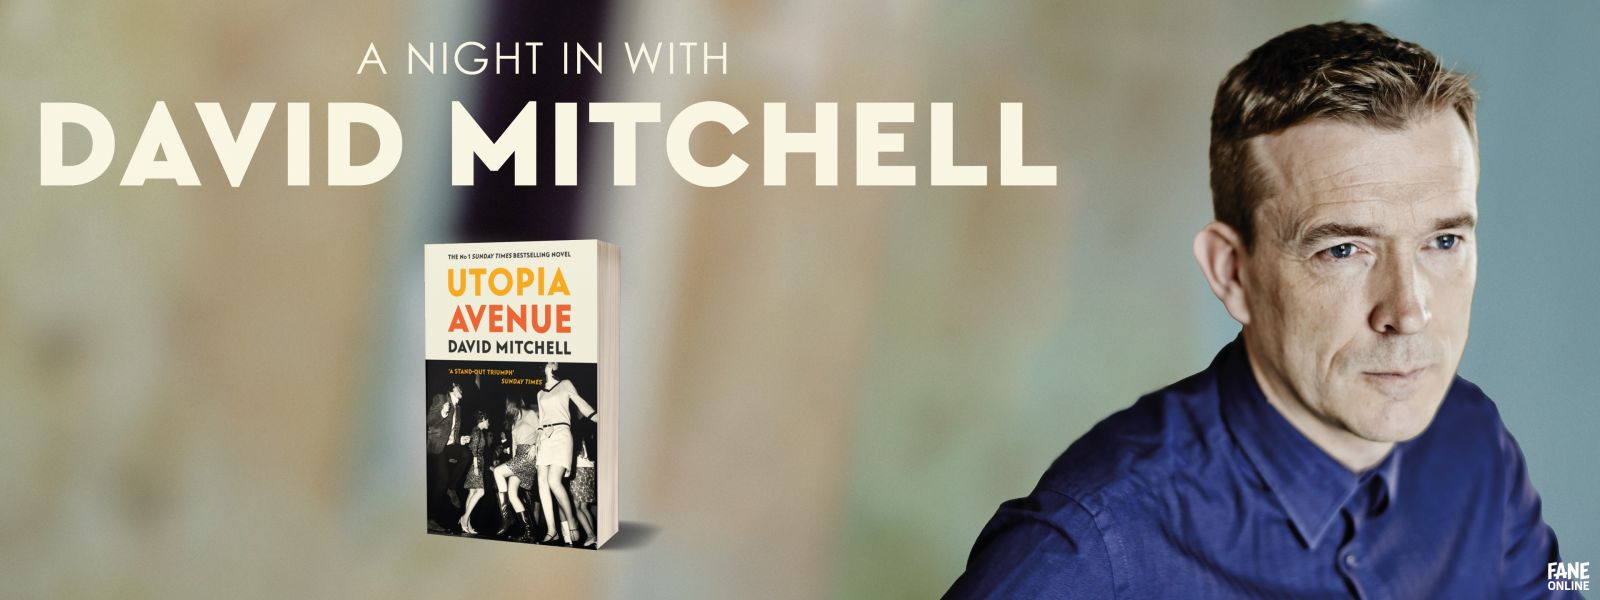 A Night In with David Mitchell